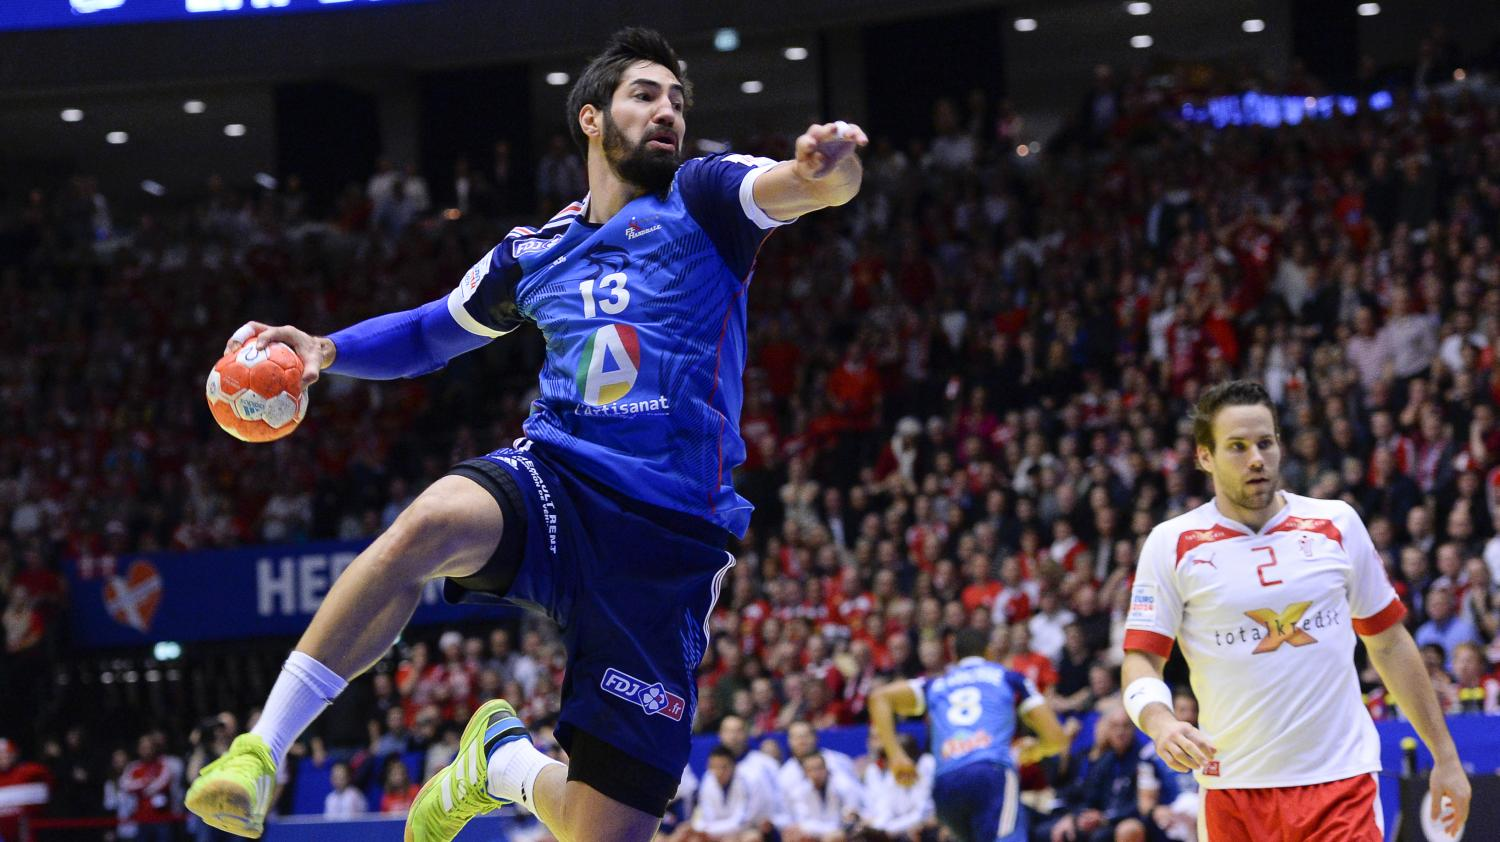 Match Handball France vs Suisse en direct live streaming